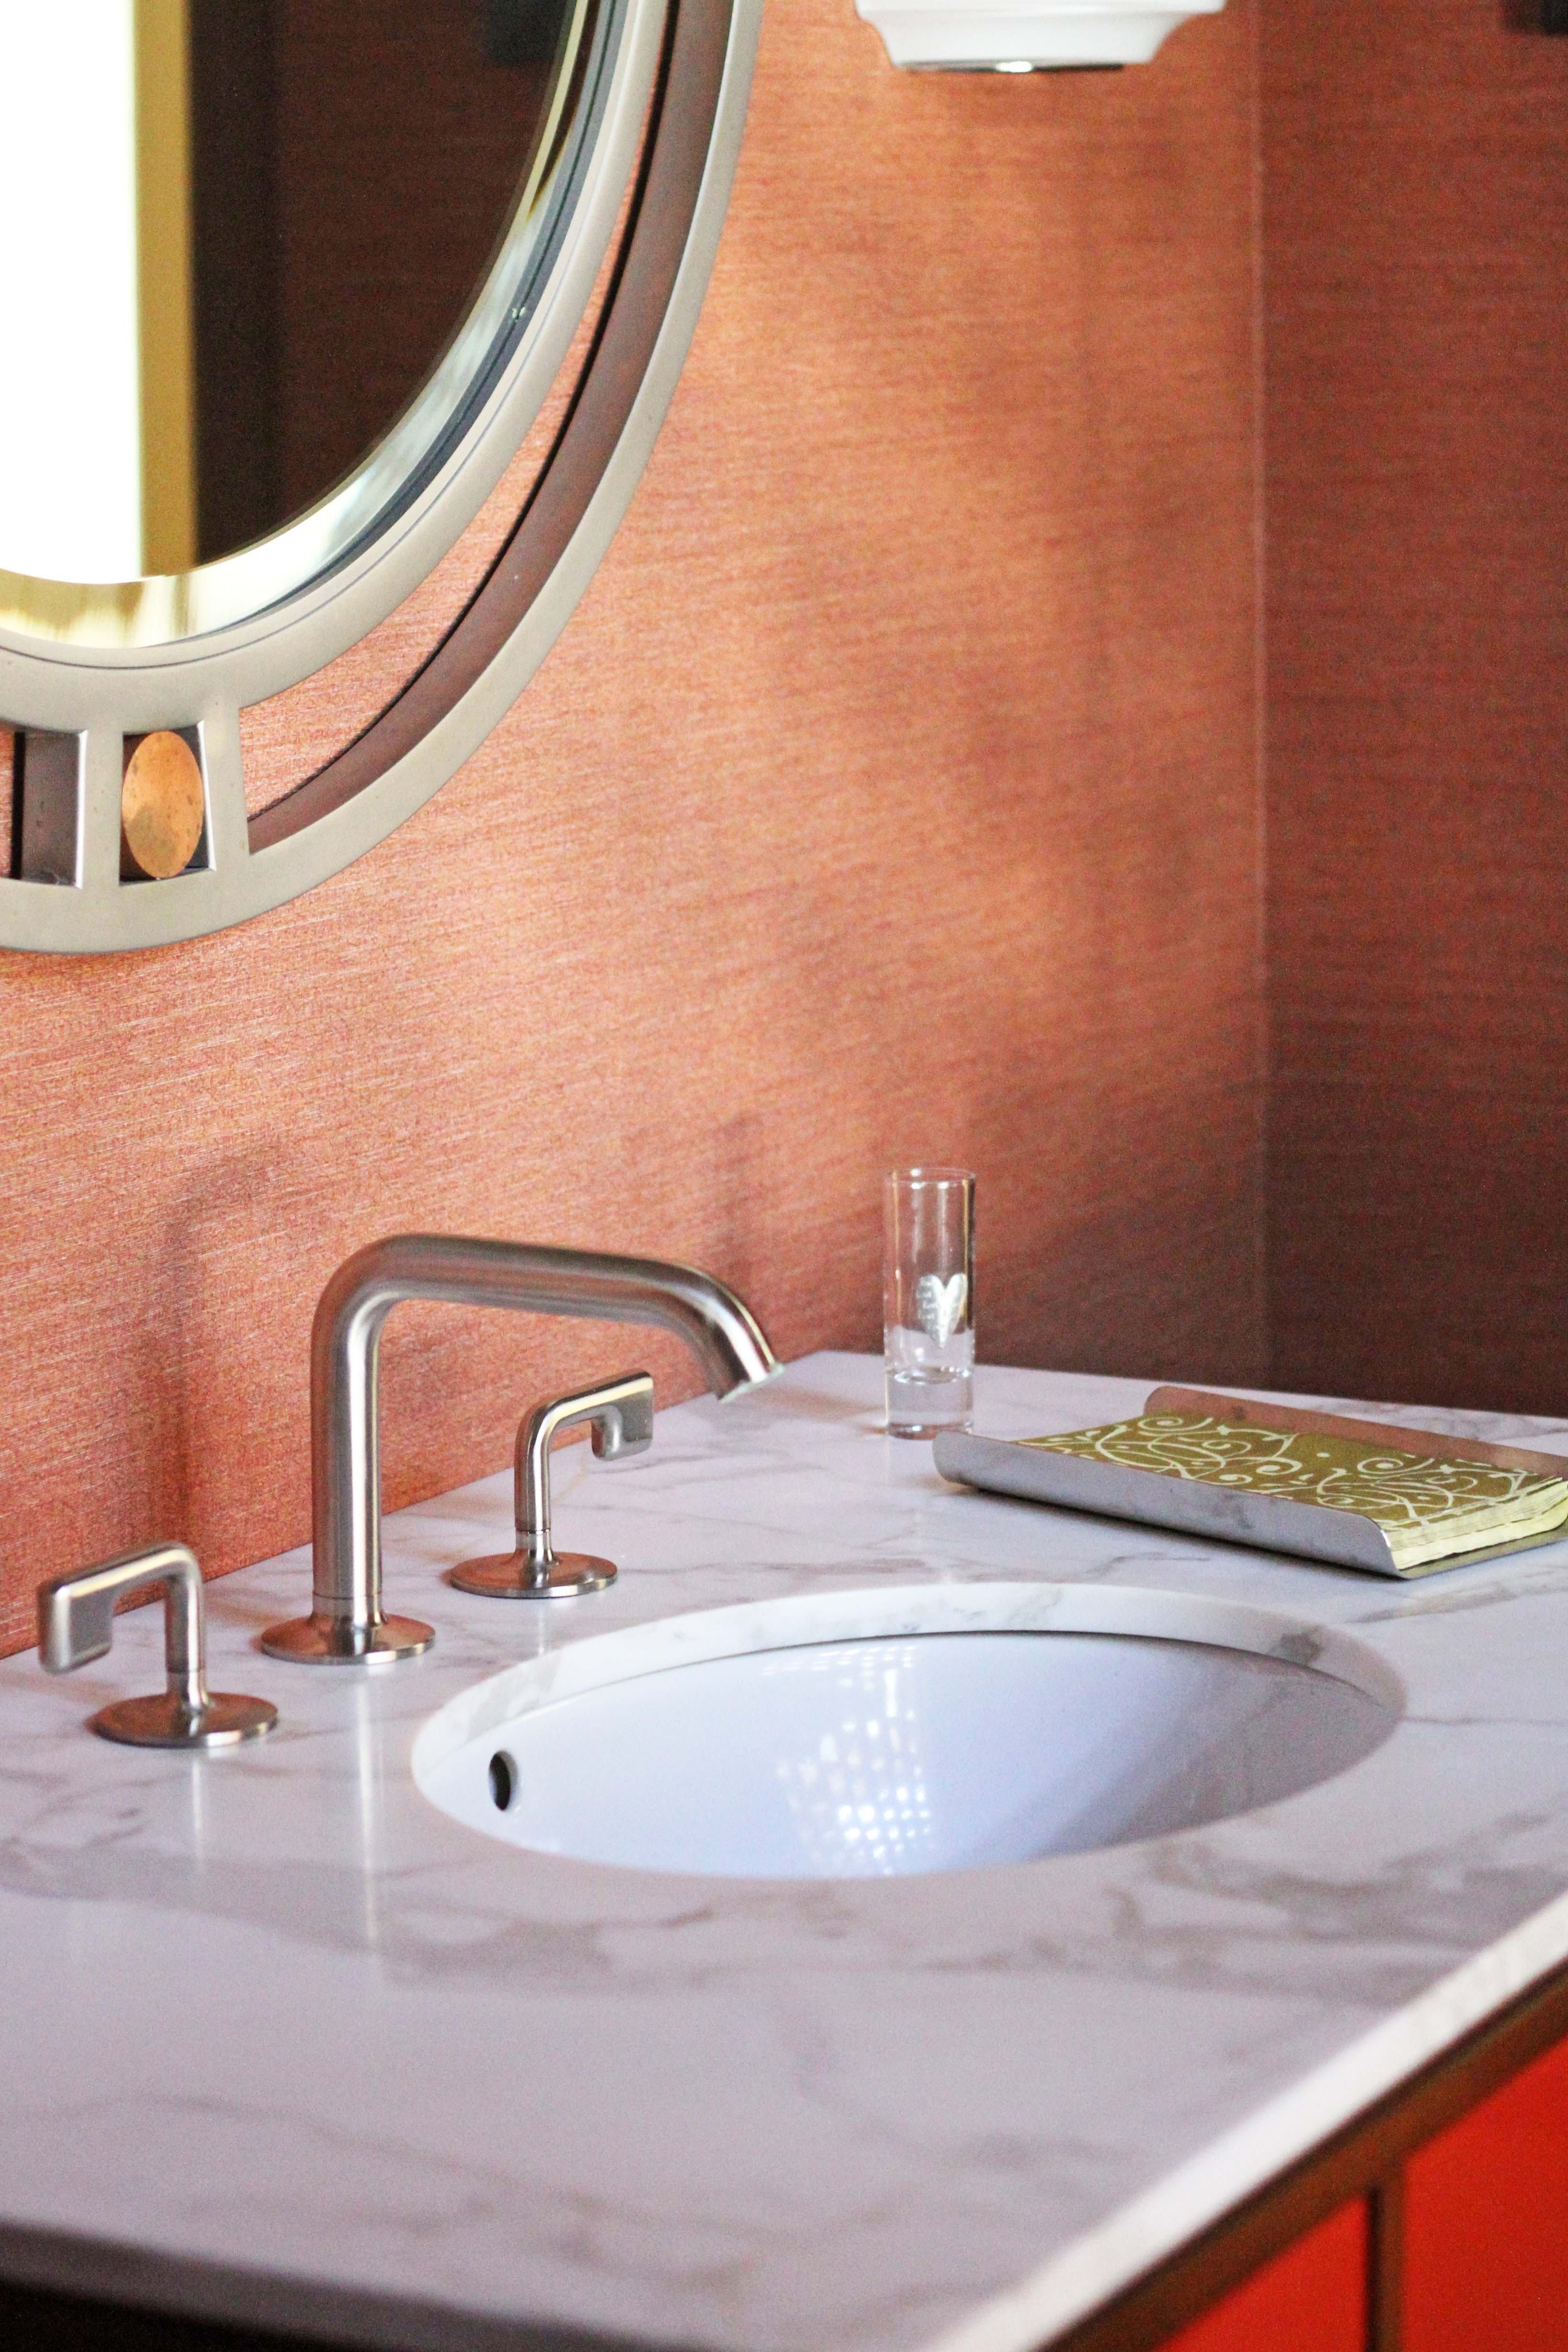 How To Naturally Unclog The Bathroom Sink Unclog